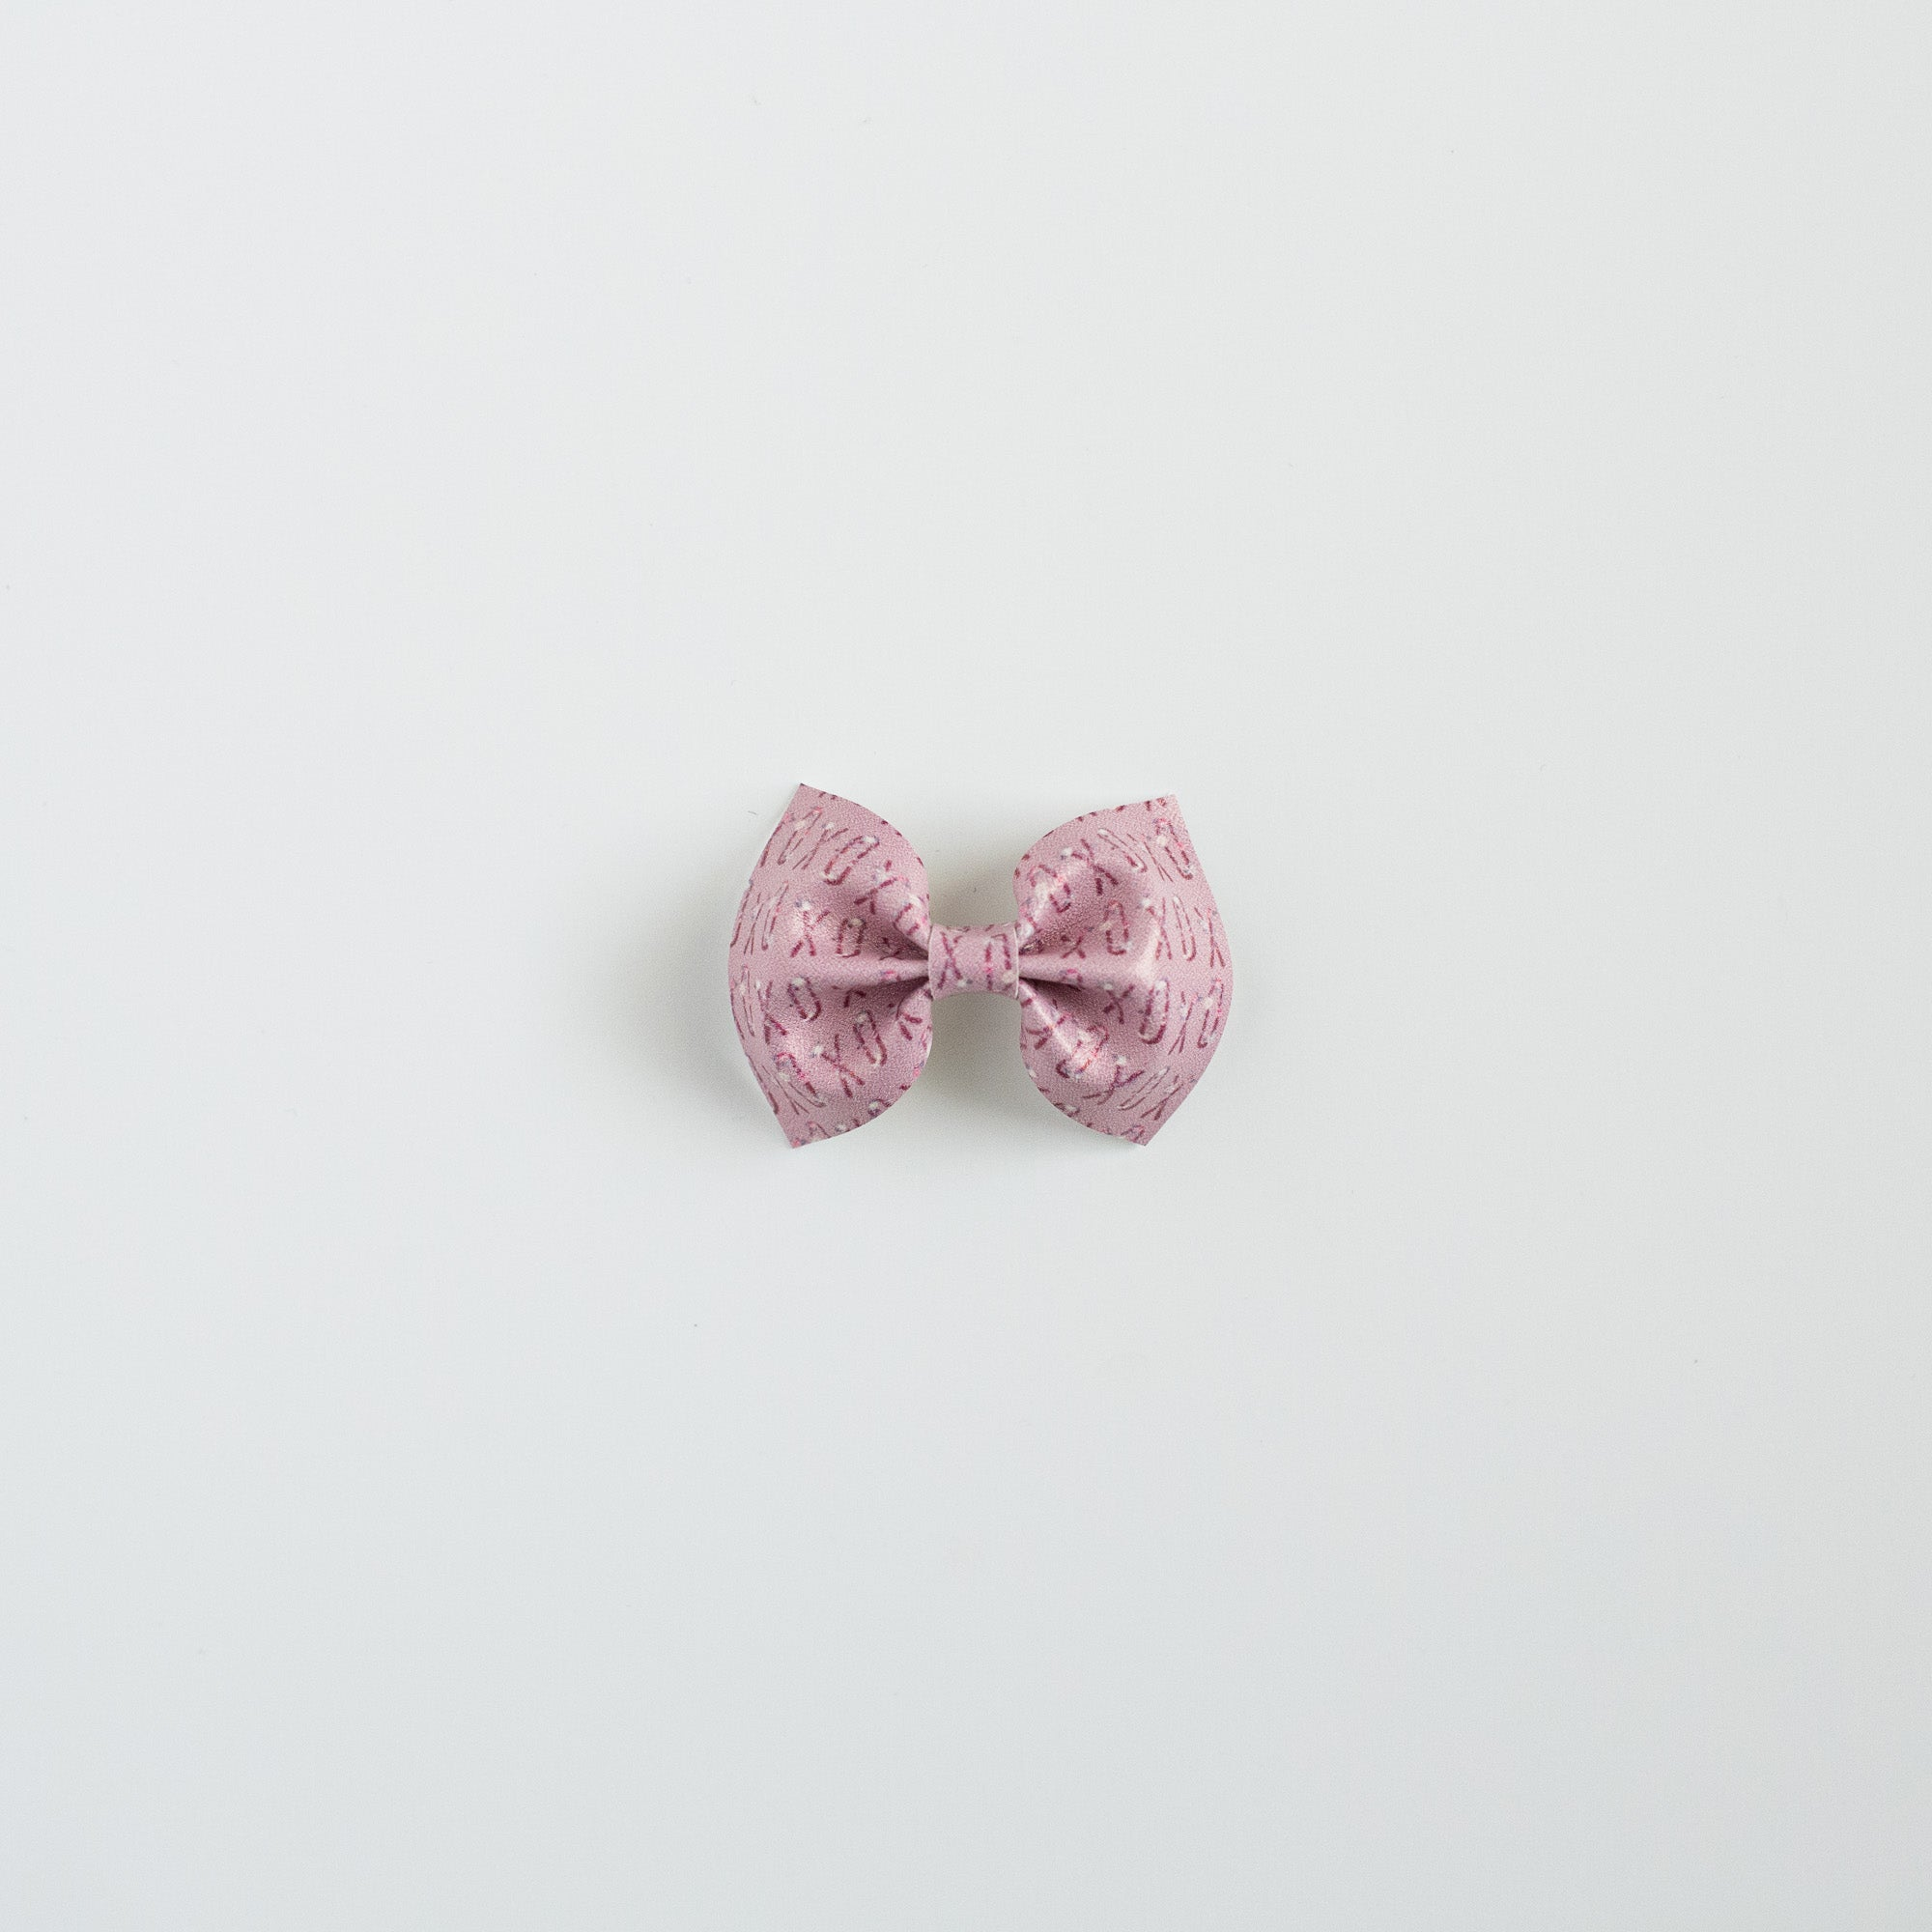 XOXO Faux Leather Bow